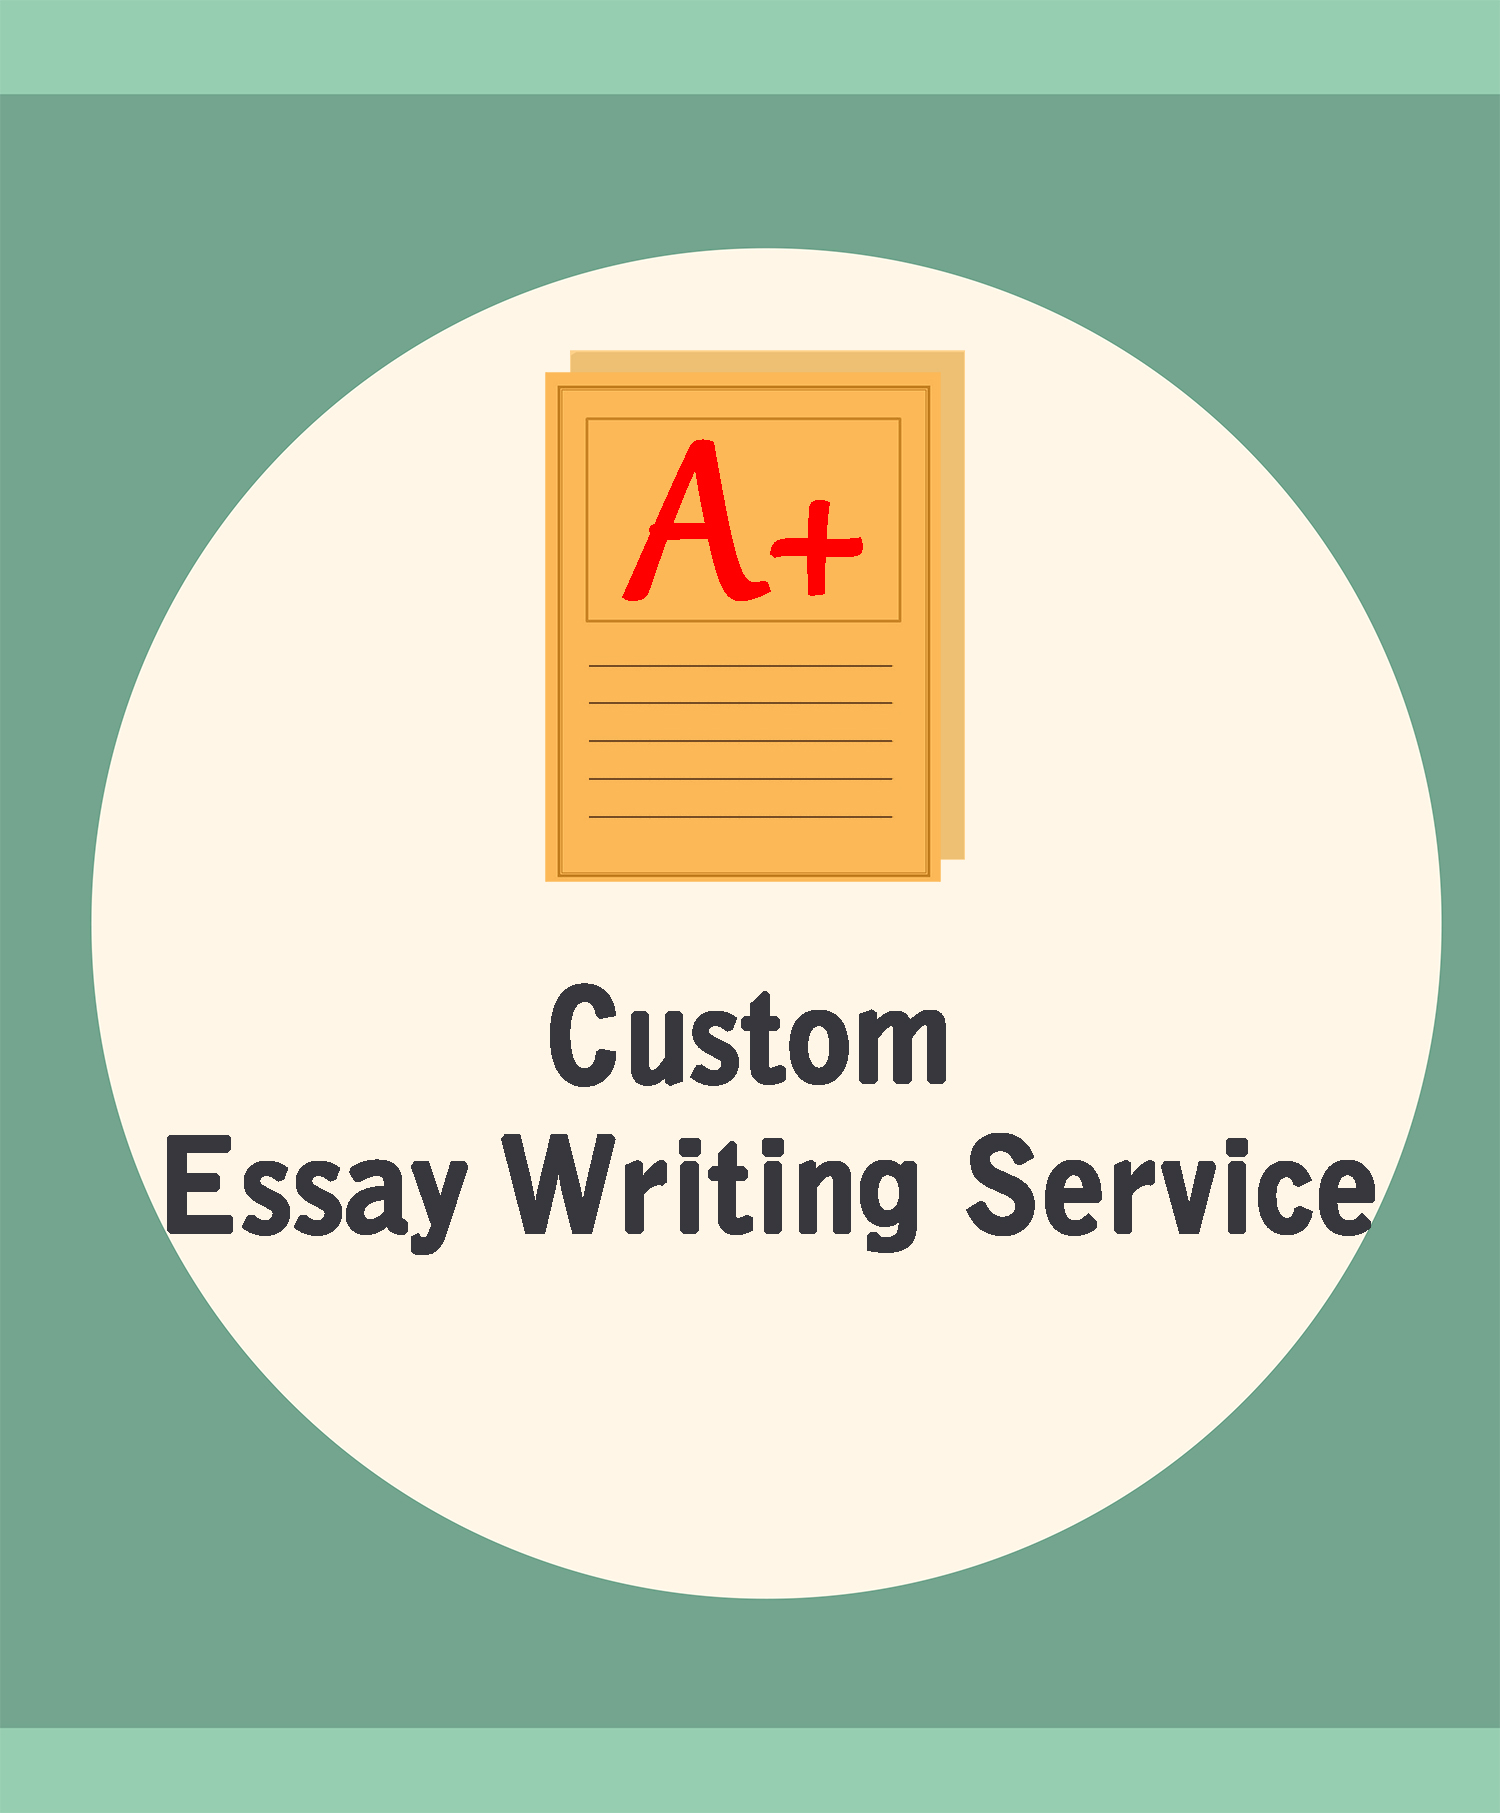 essay writing service usa custom paper writing services essay  custom paper writing services custom paper writing services tk essay essay papers cheap